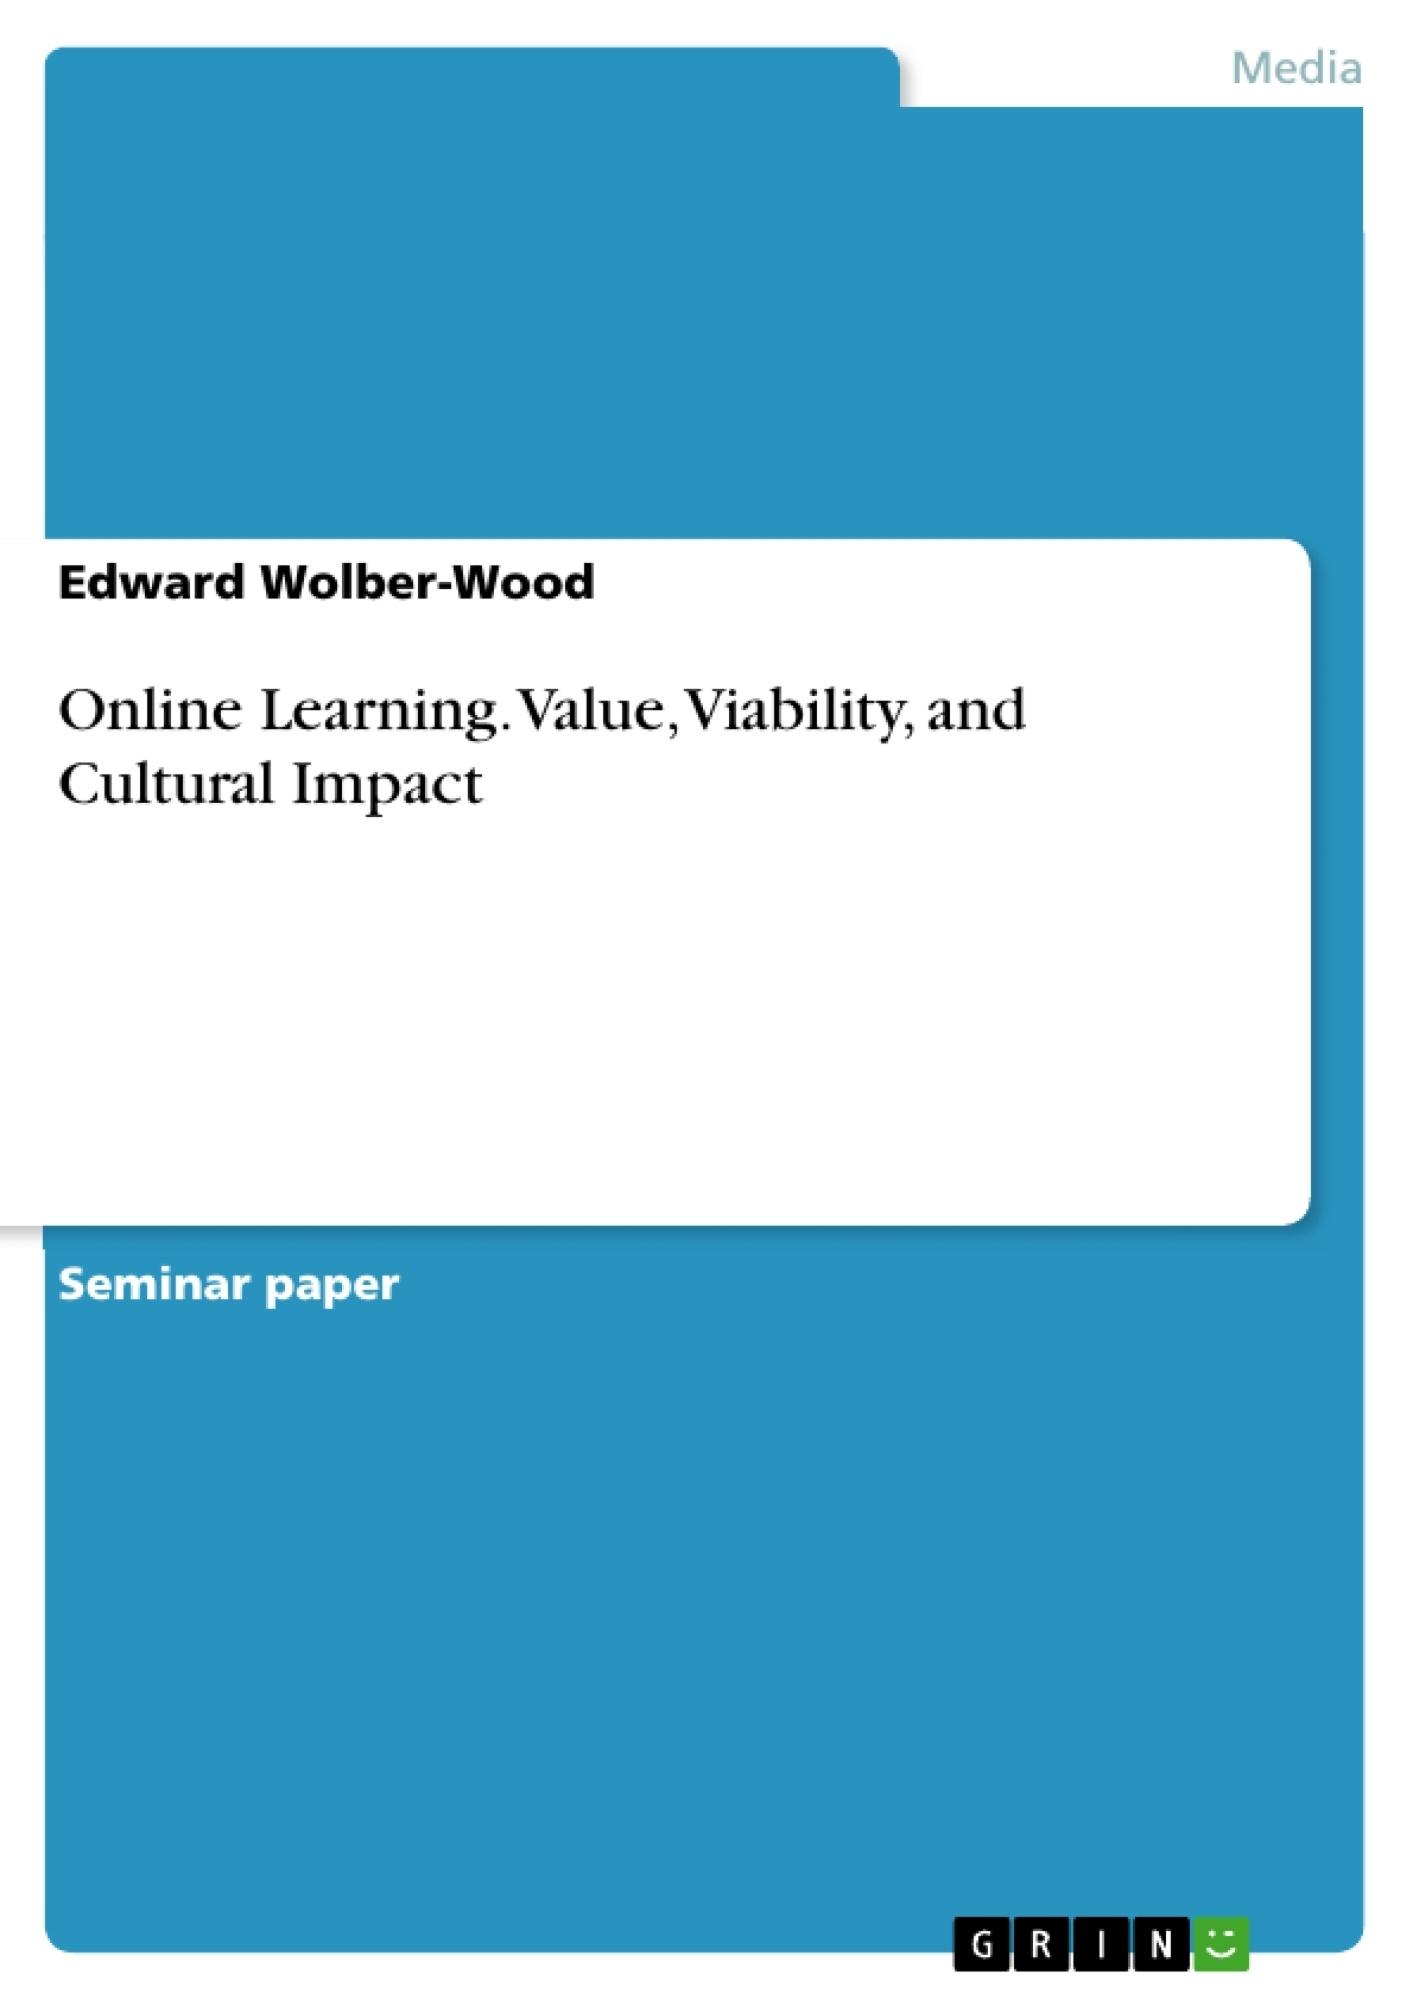 Title: Online Learning. Value, Viability, and Cultural Impact